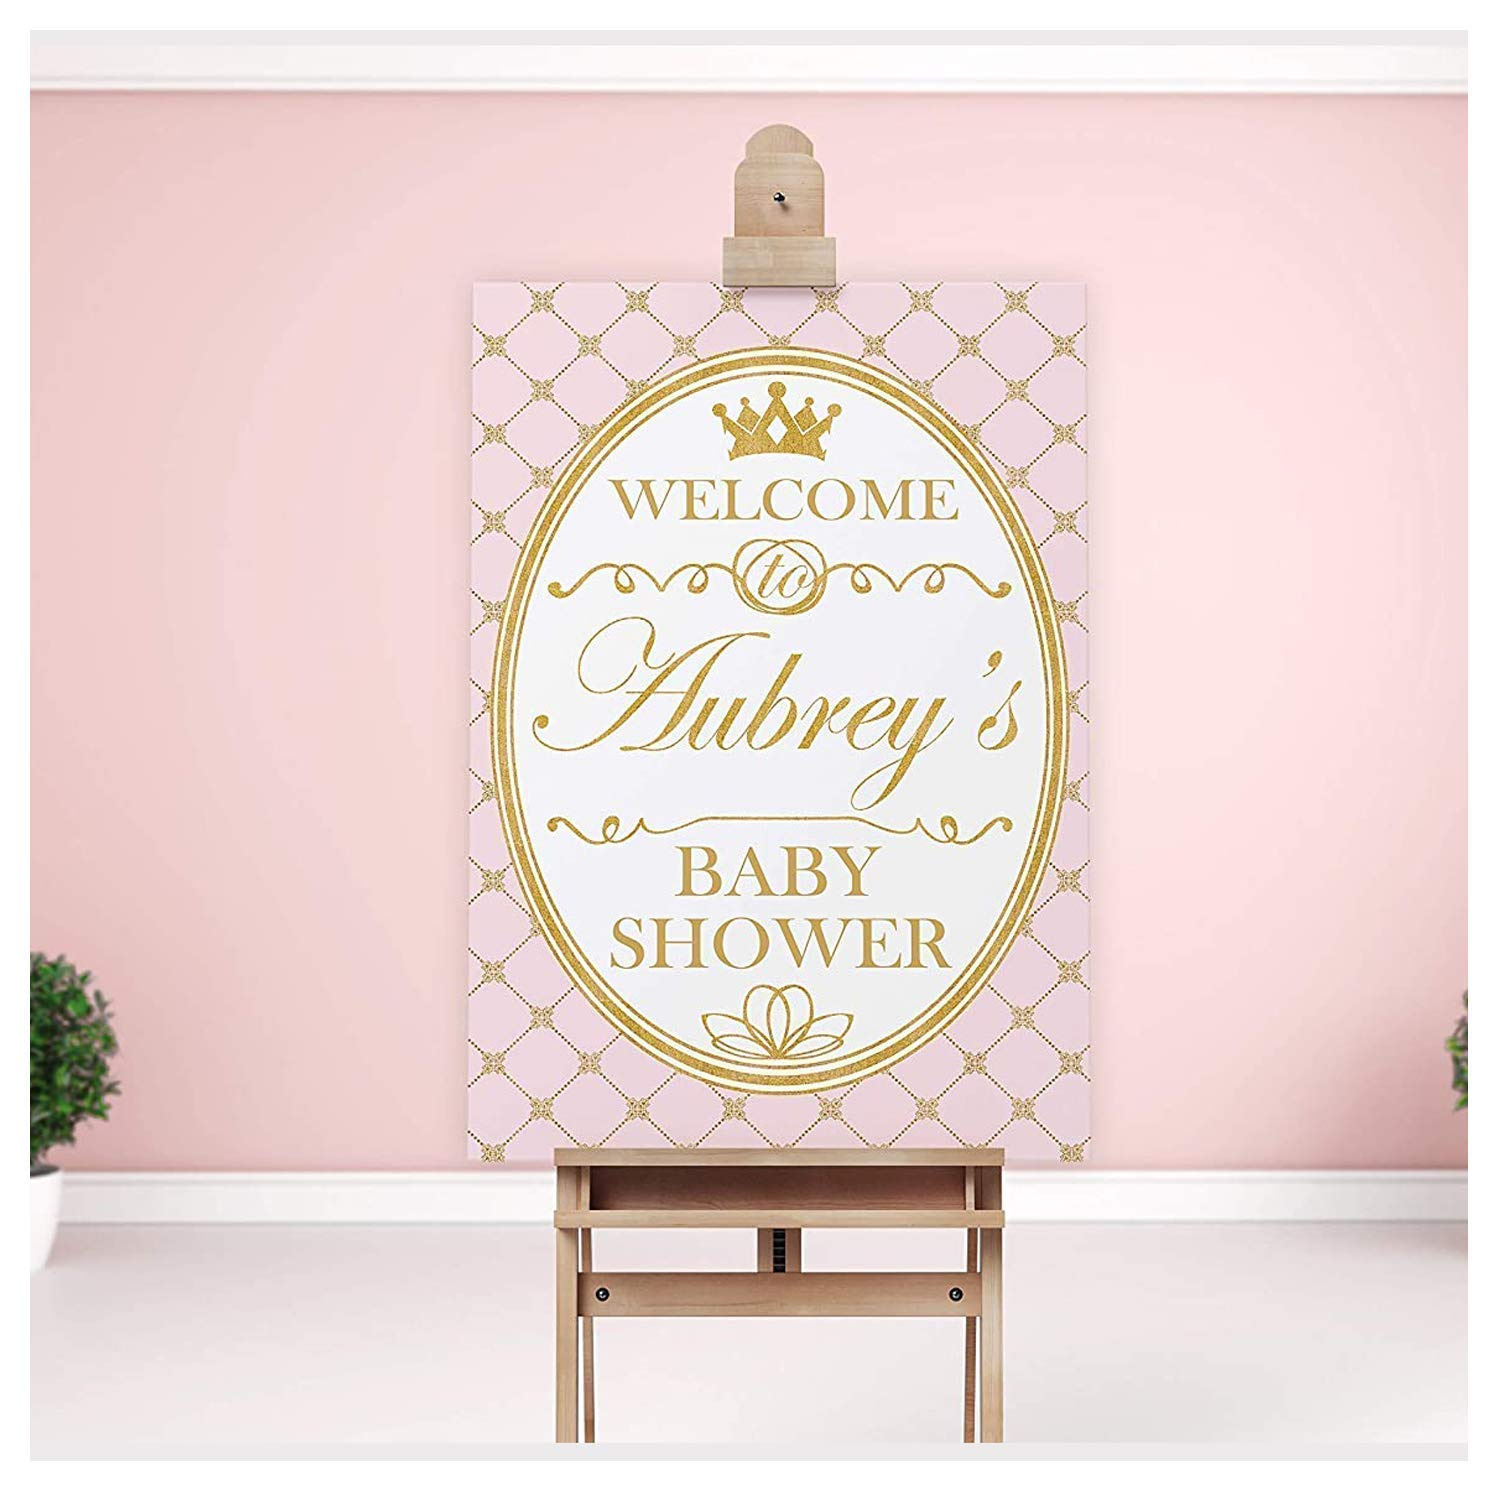 Royal Prince Foam Board Sign Personalized Welcome Sign Royal Baby Shower Welcome Sign Baby Shower Welcome Sign Welcome to the Party Sign